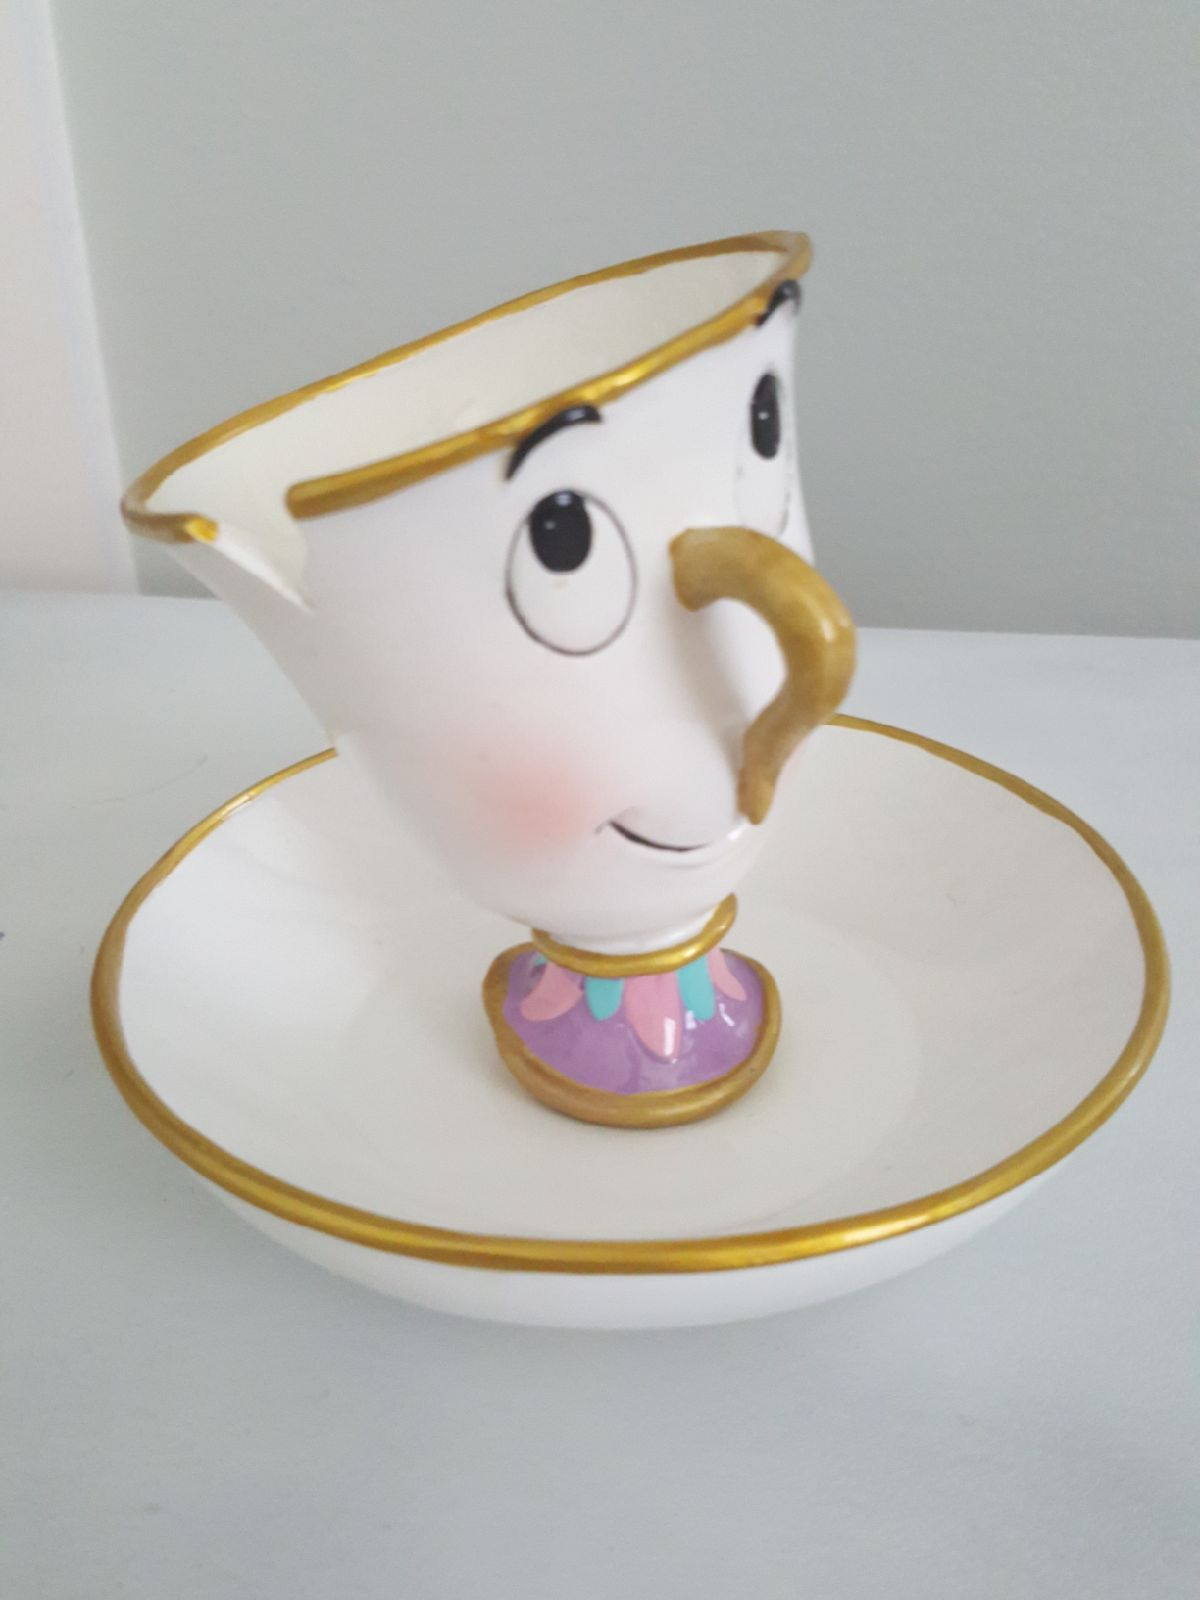 Chip From Disney S Beauty And The Beast Holds Jewlery Adorable For A Little Girls Disney Beauty And The Beast Beauty And The Beast Theme Beauty And The Beast